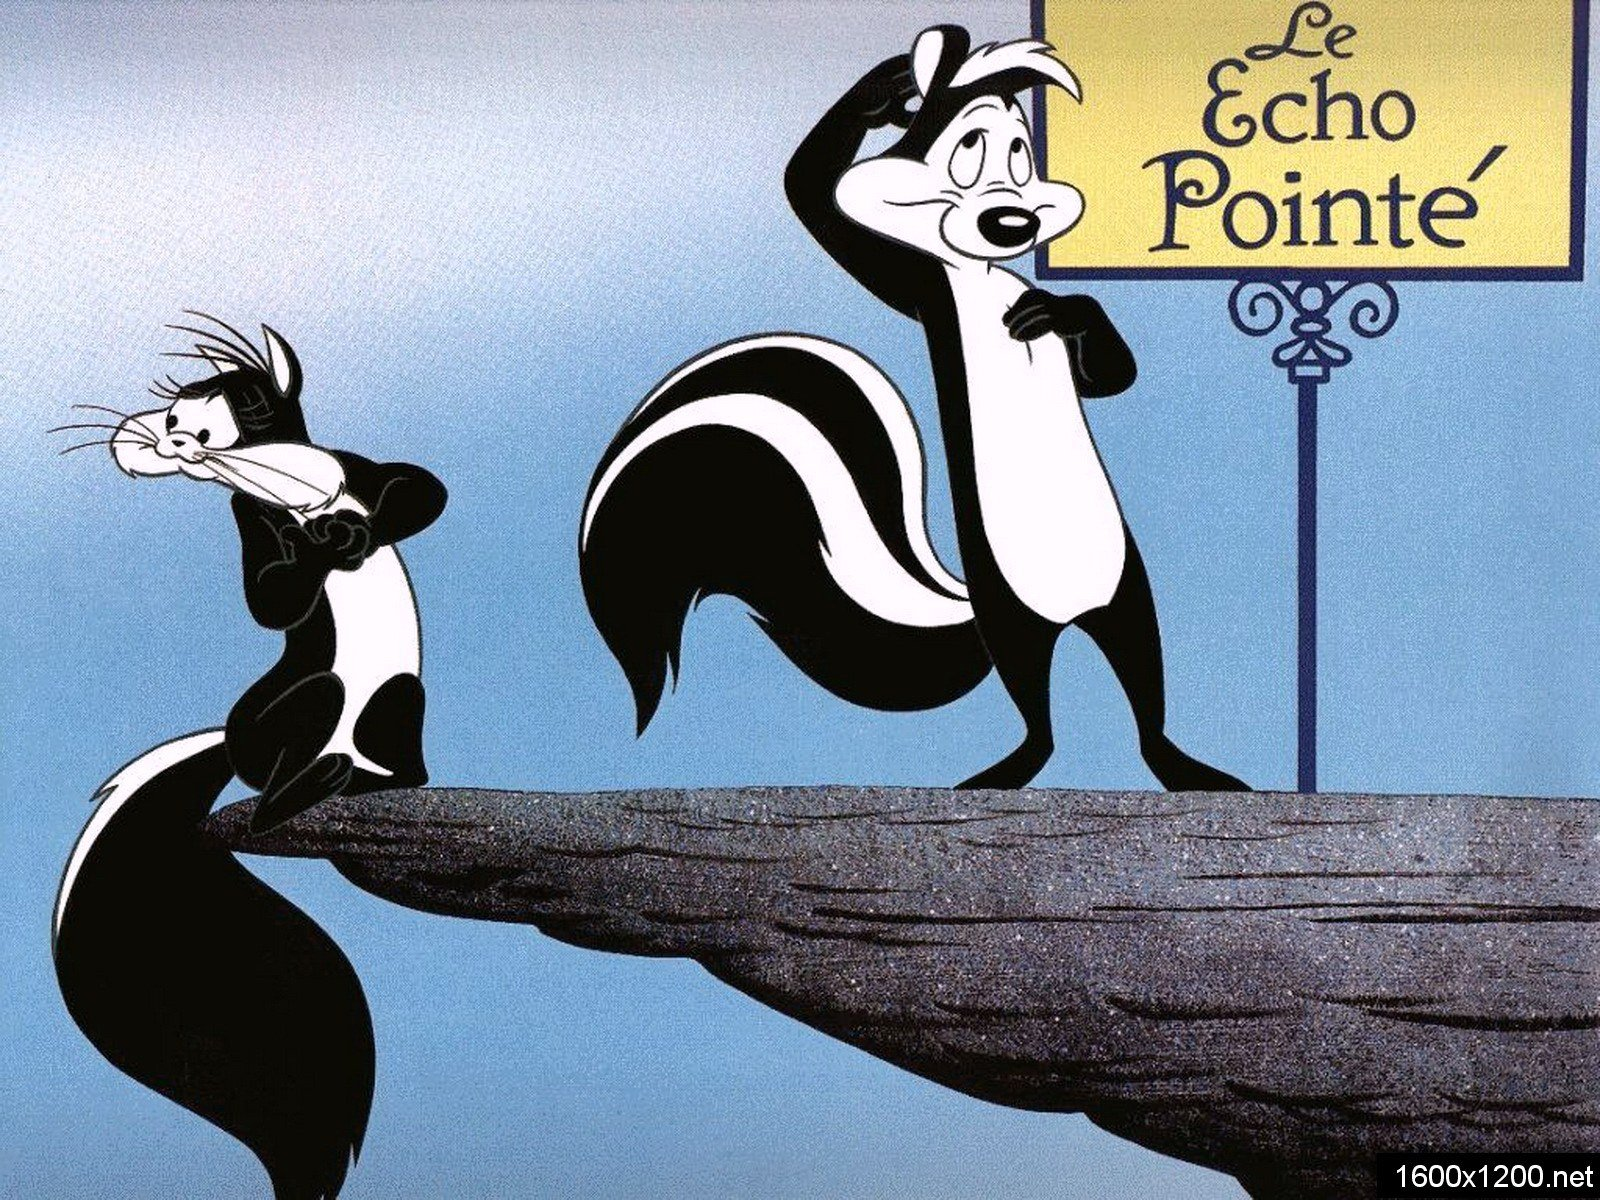 PEPE LE PEW Looney Tunes french france comedy family animation 1pepepew skunk cat romance